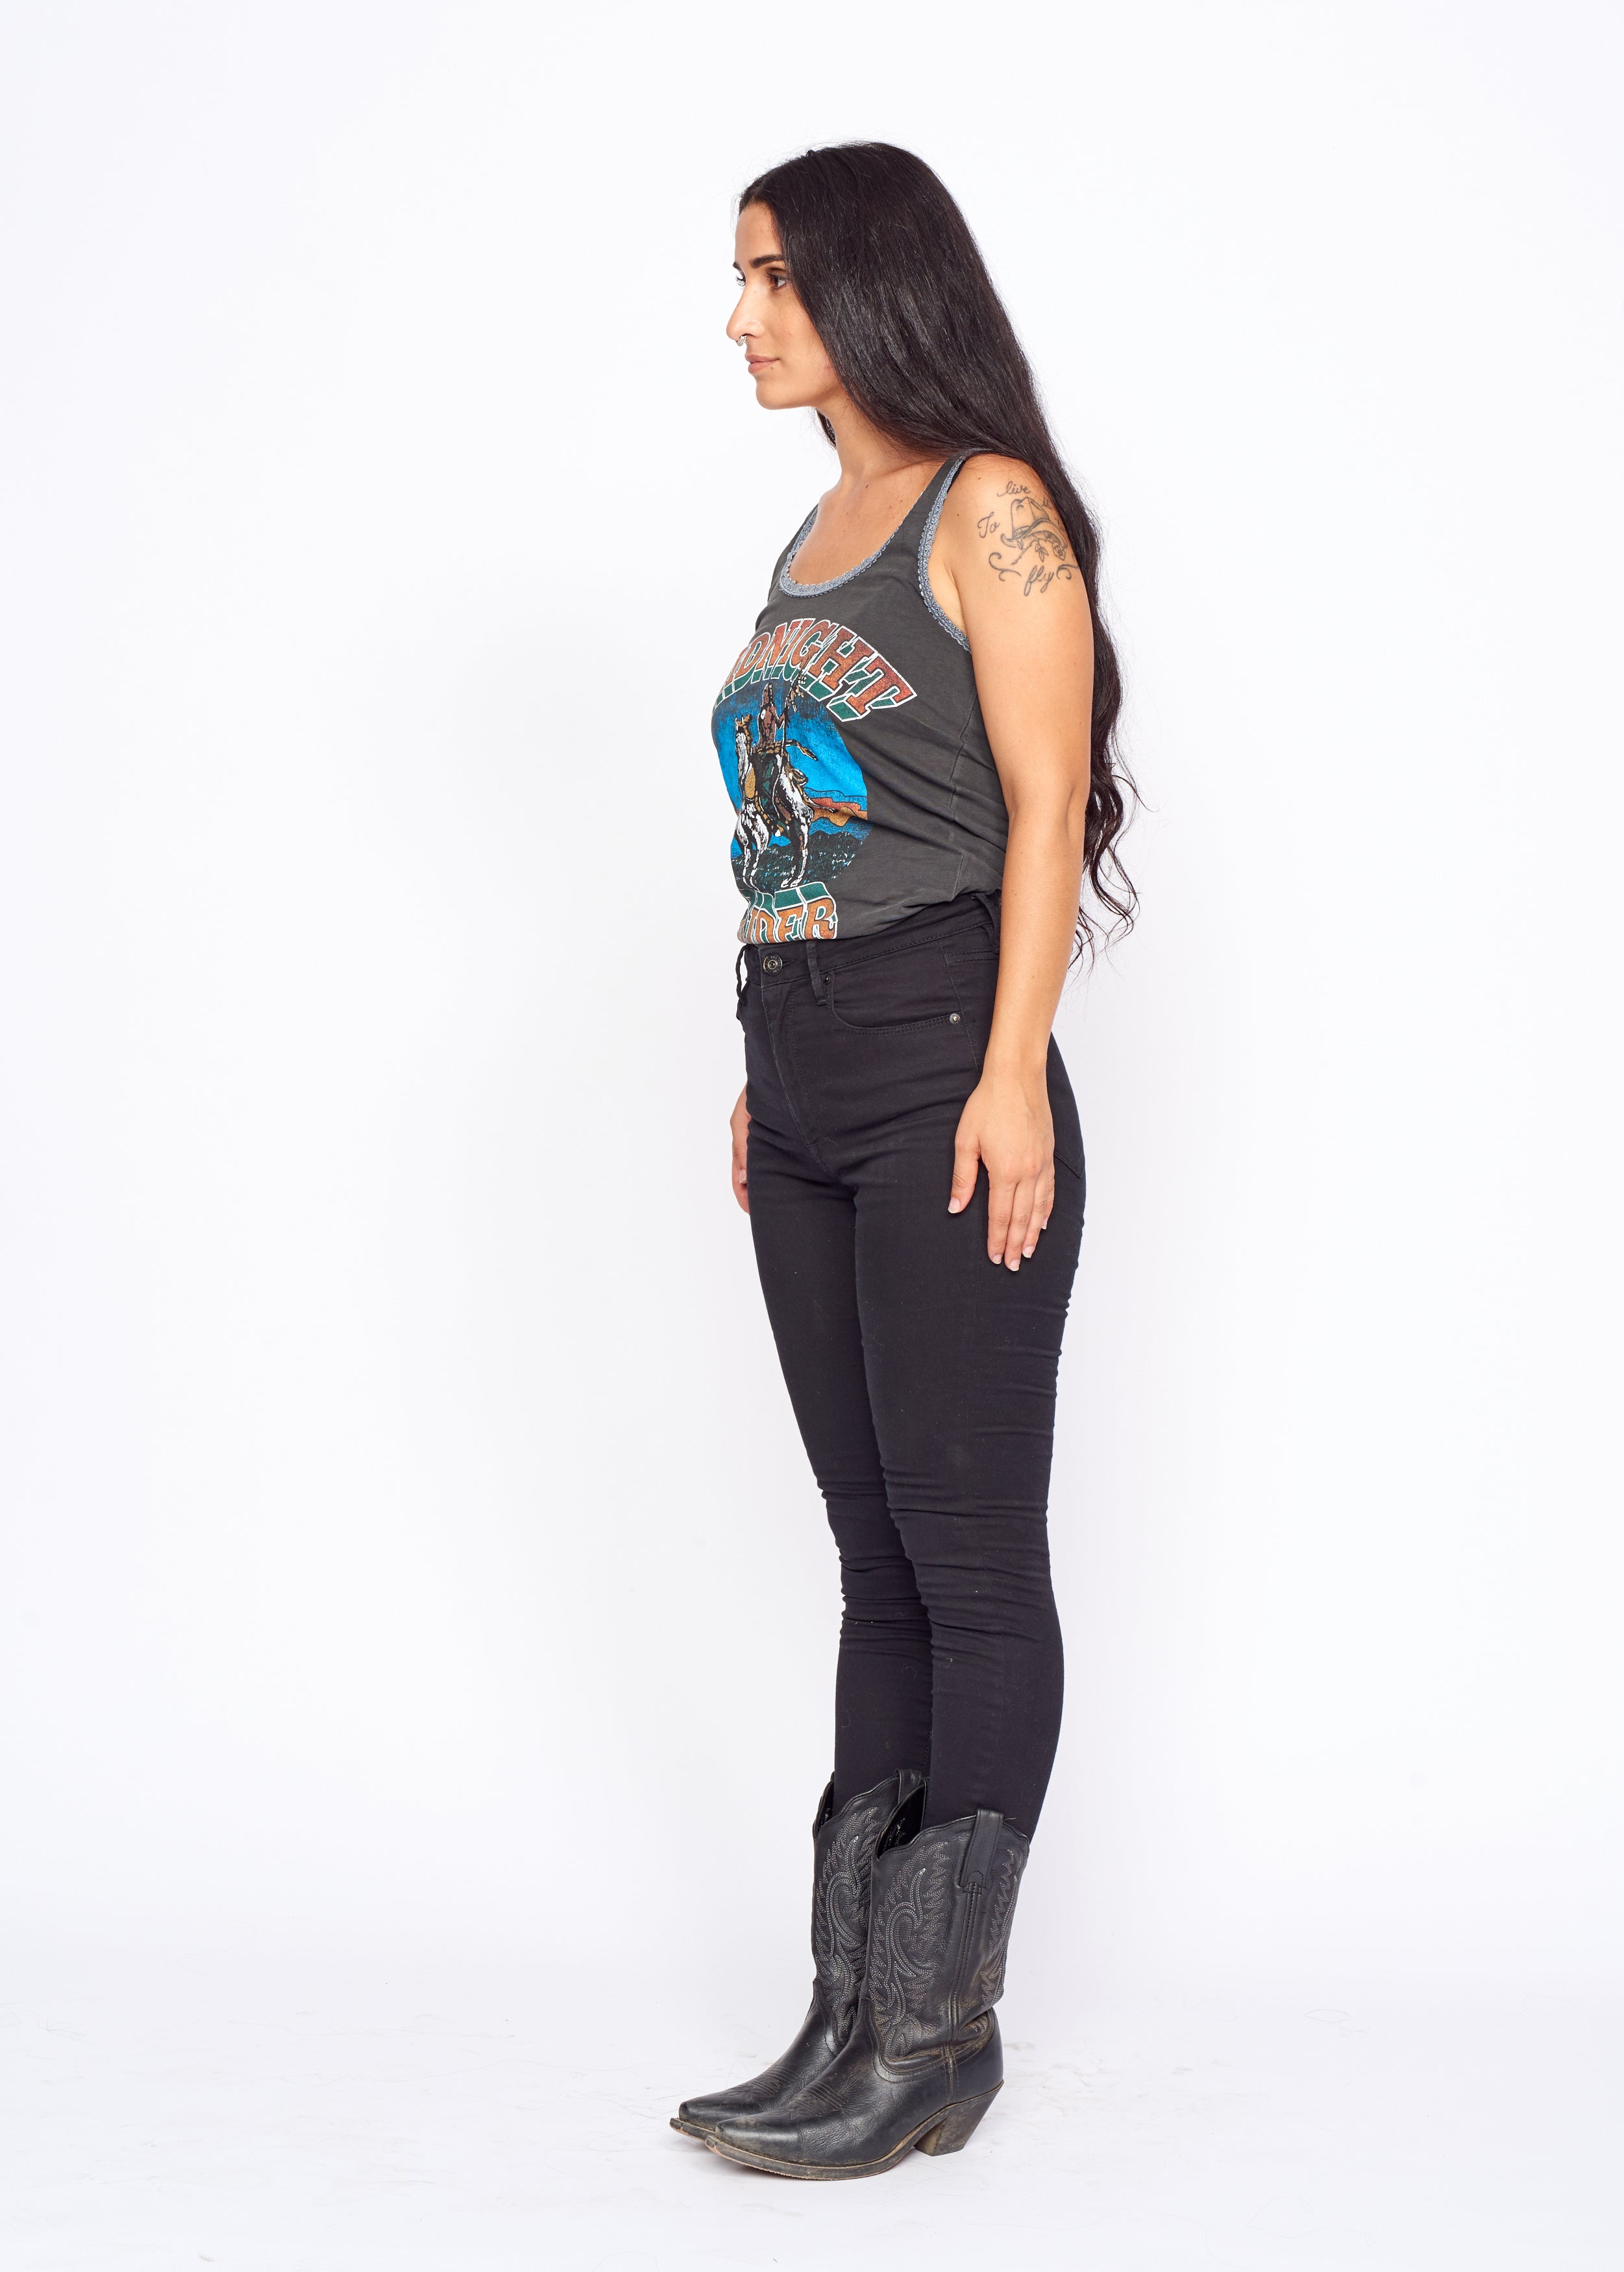 On Horseback Lace Tank